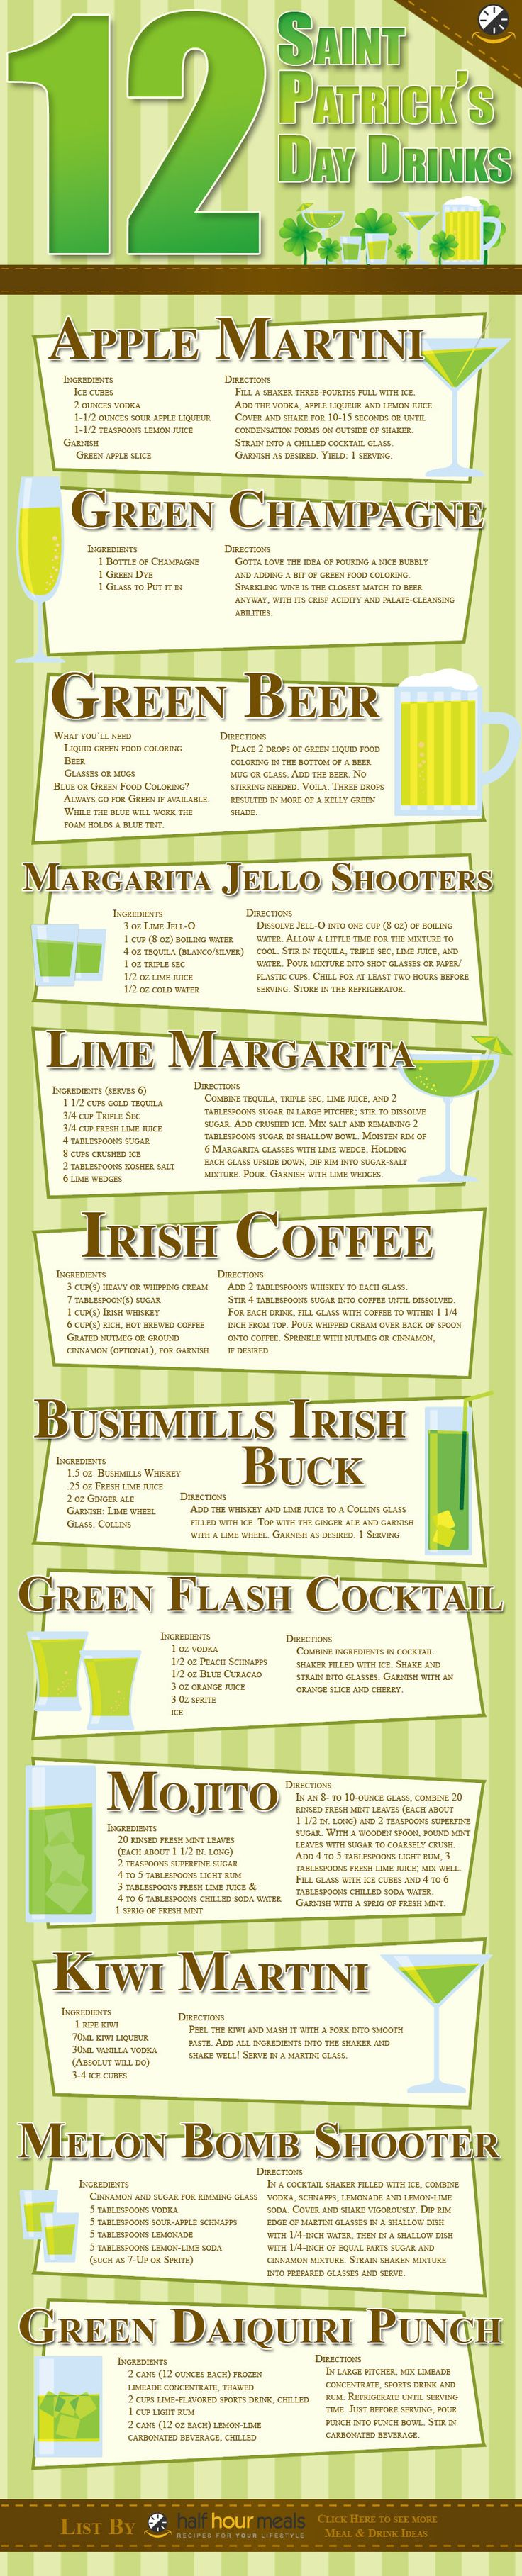 St. Patrick's Day Drink Recipes: http://drinkedin.net/blog/253-12-drinks-to-celebrate-st-paddys-the-right-way.html